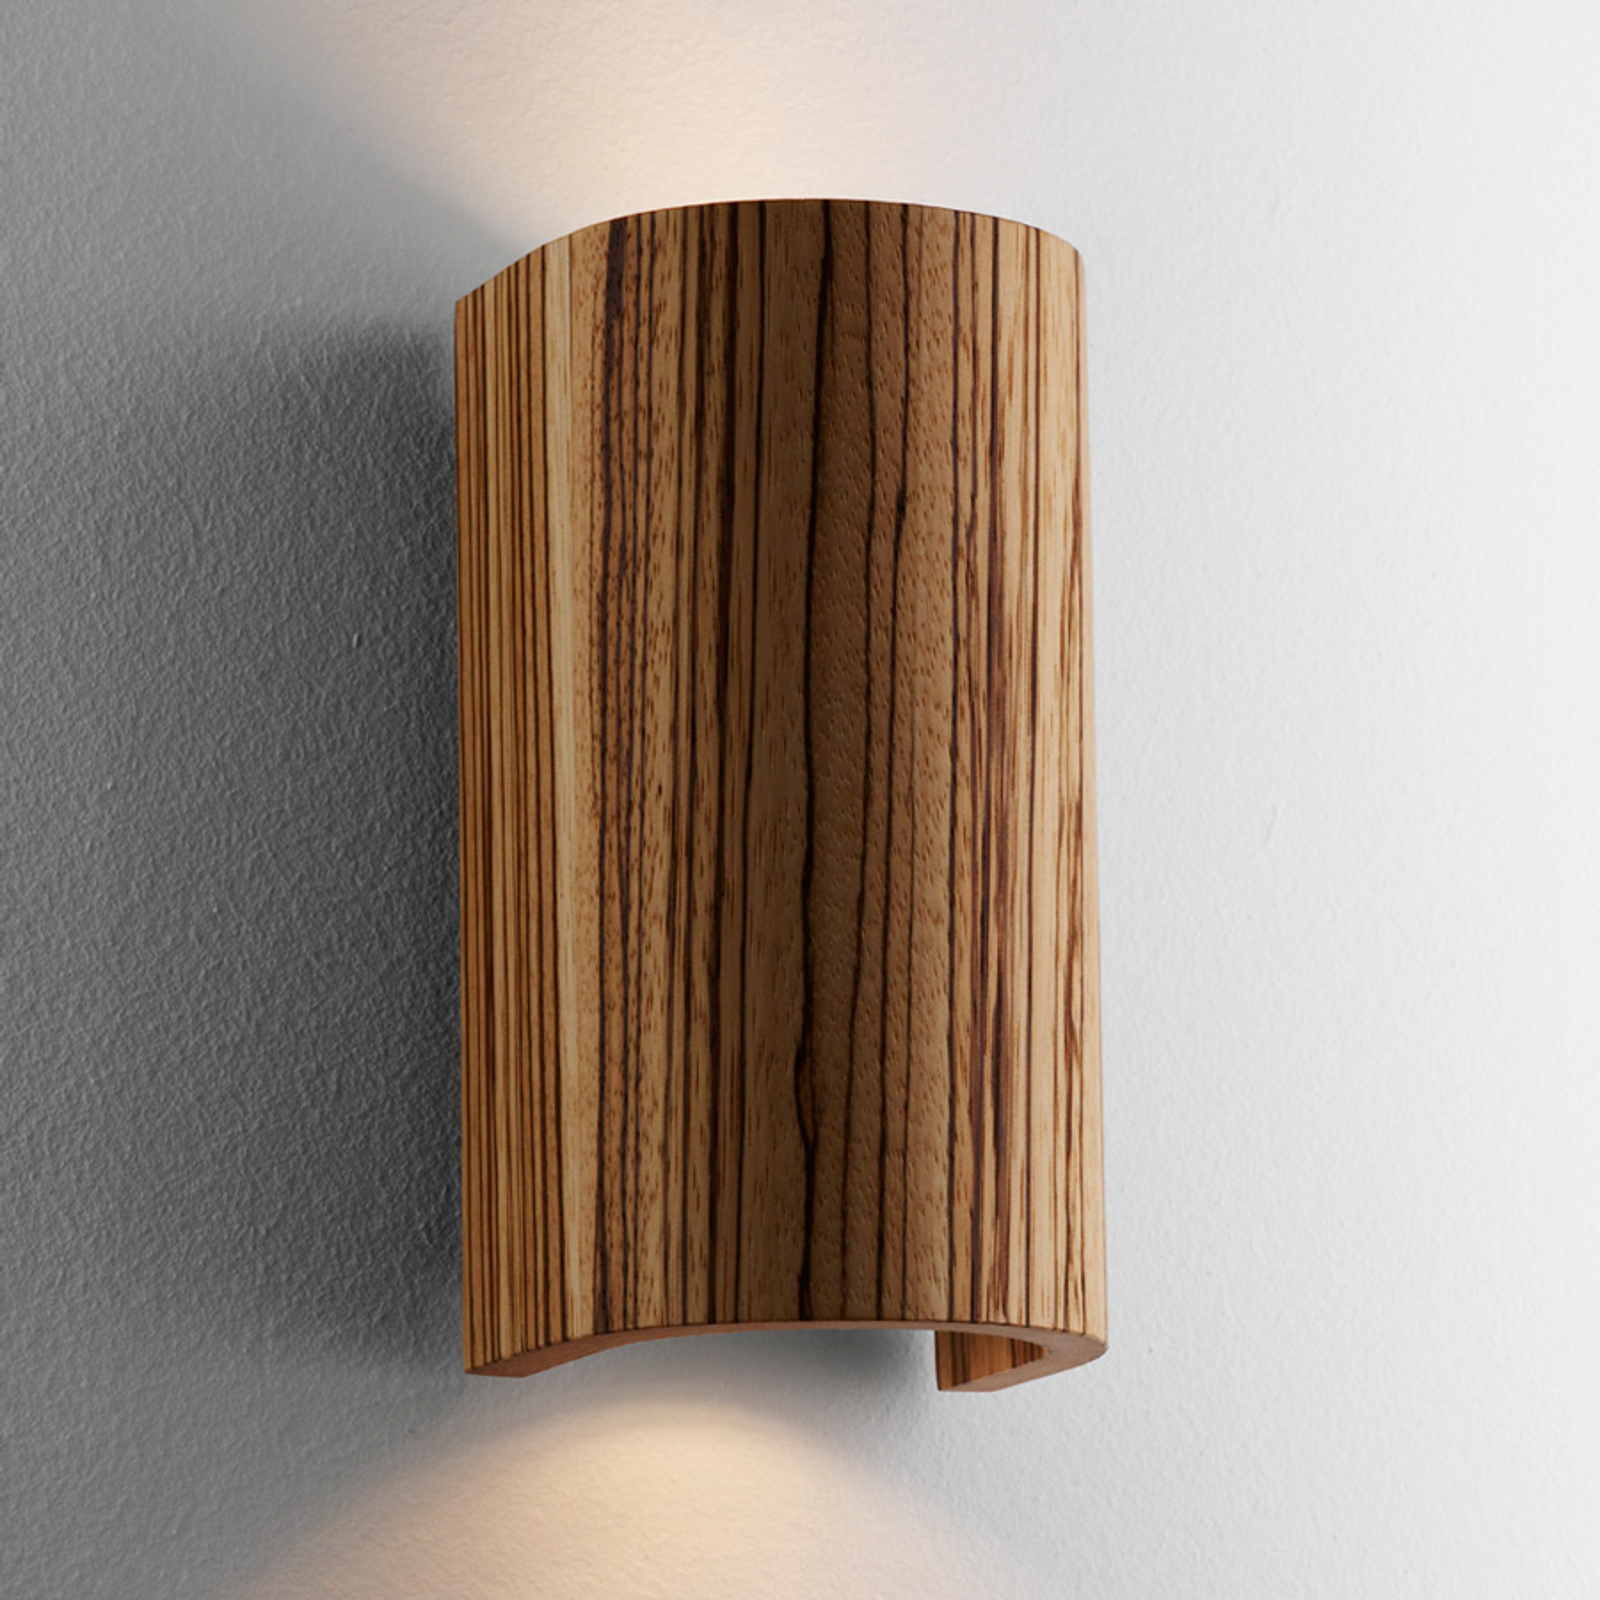 Beautiful Wall Light Tube Zebra Wood 17.5 cm_2600281_1